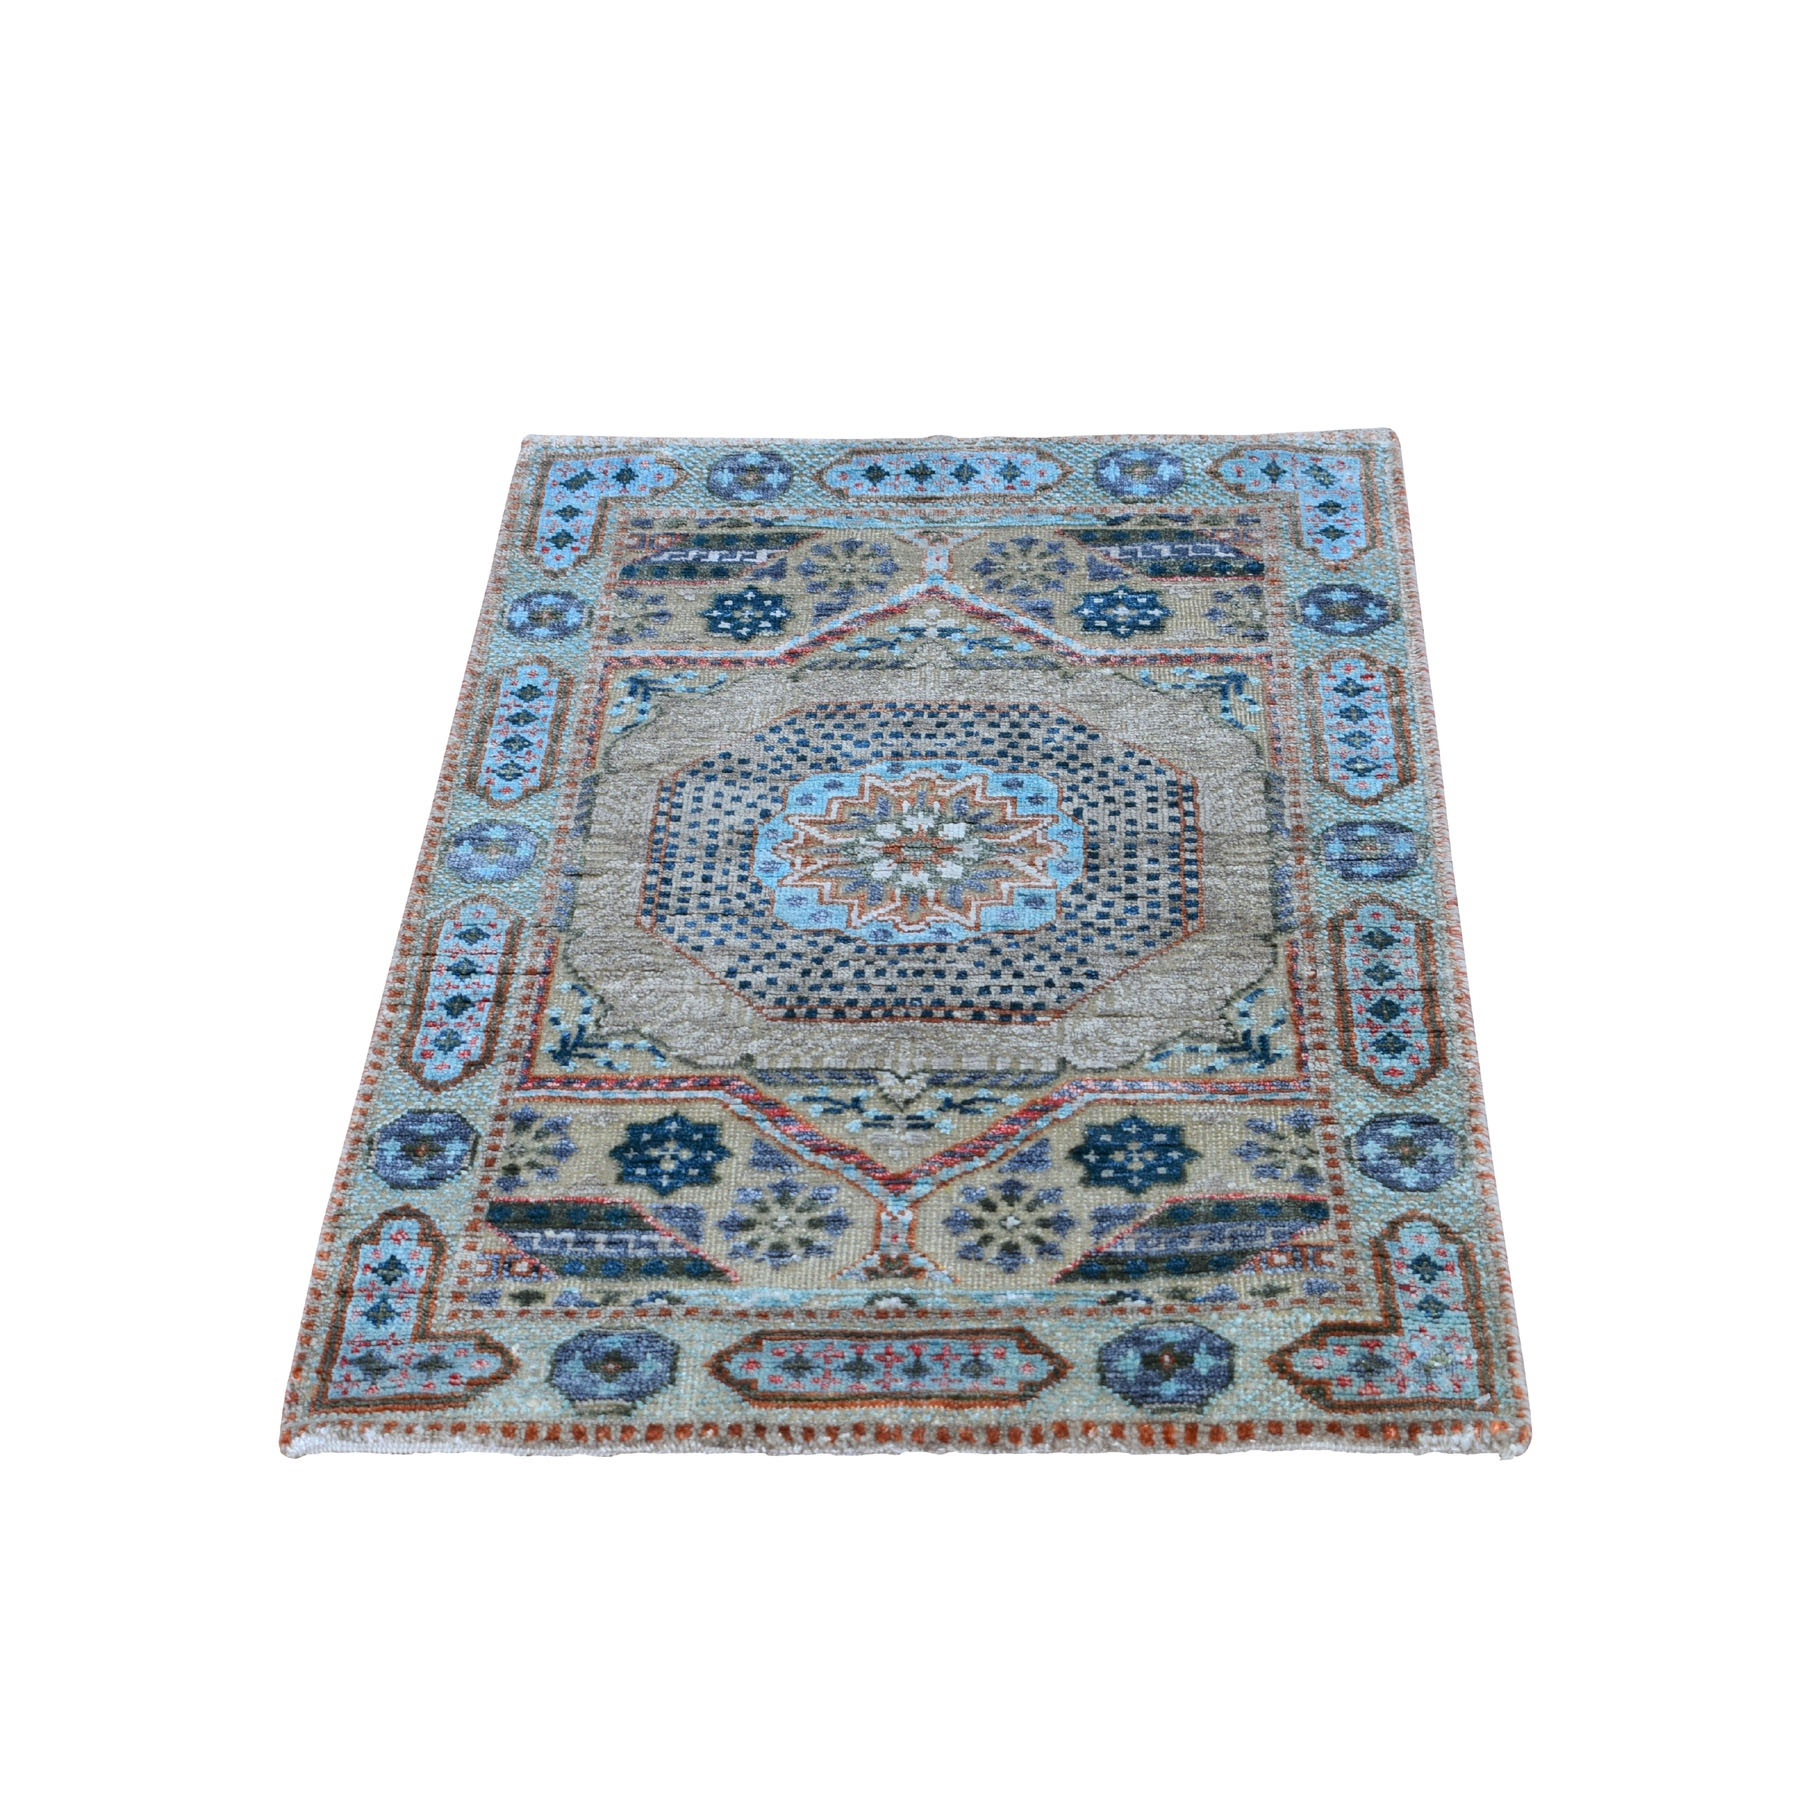 "2'x3'1"" Blue Silk With Textured Wool Mamluk Design Hand knotted Oriental Rug"